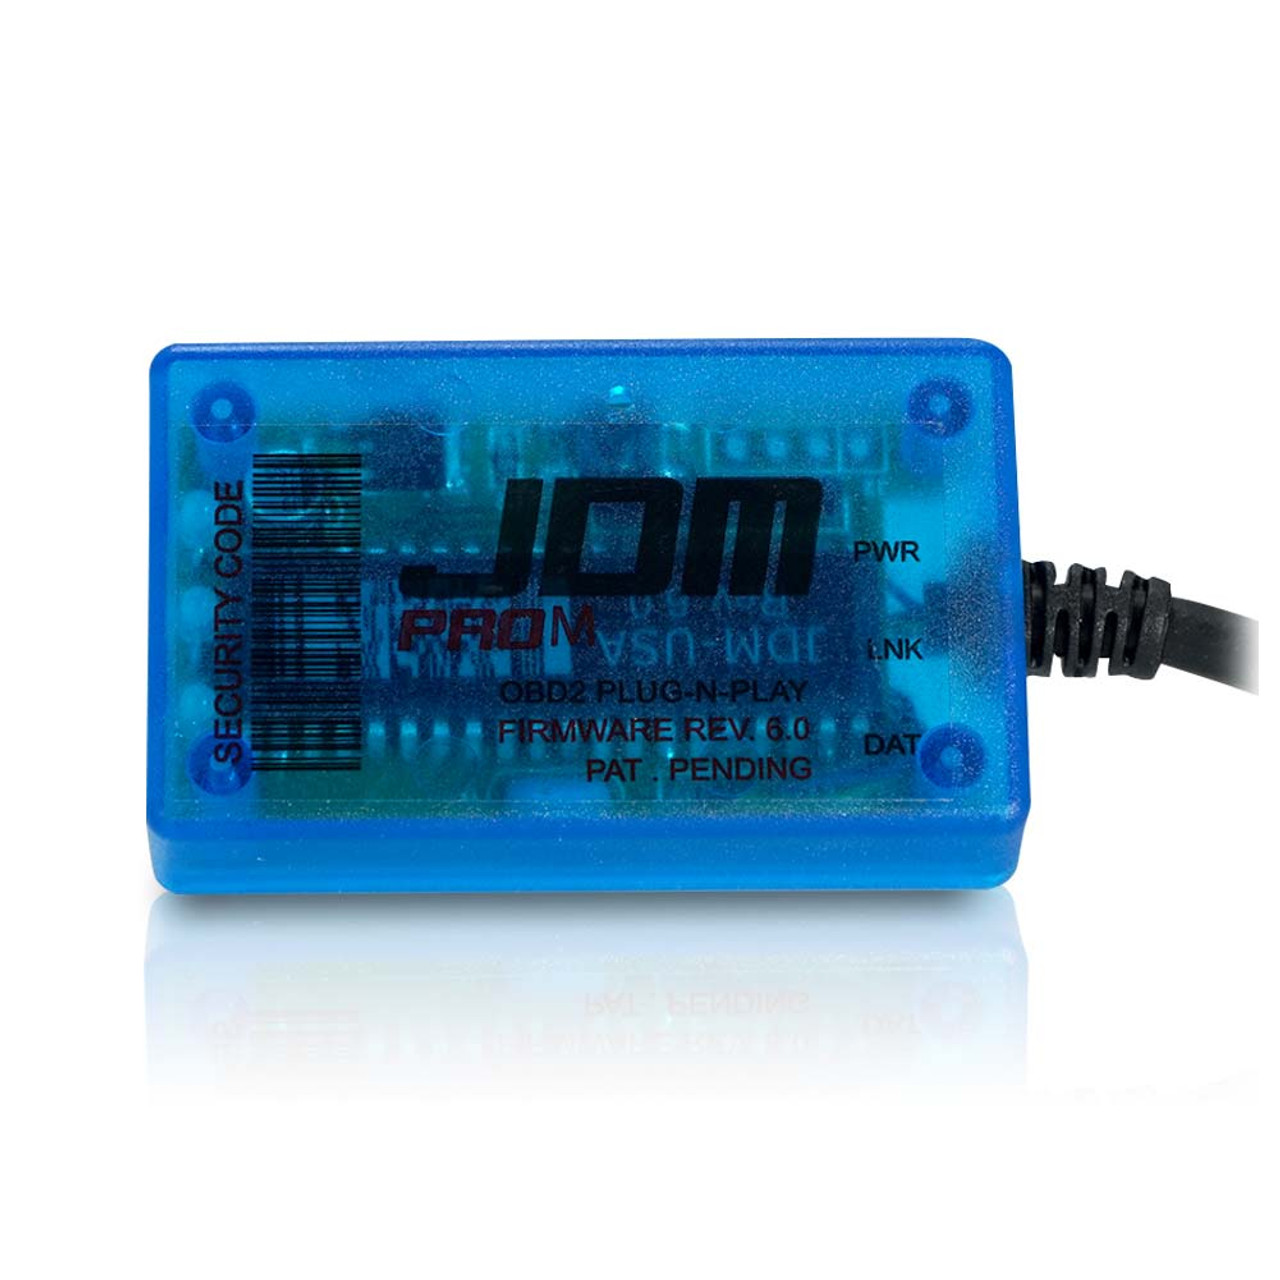 Performance Tuning Tuner Speed OBDII OBD2 OBD II 2 Chip Module for Volkswagen